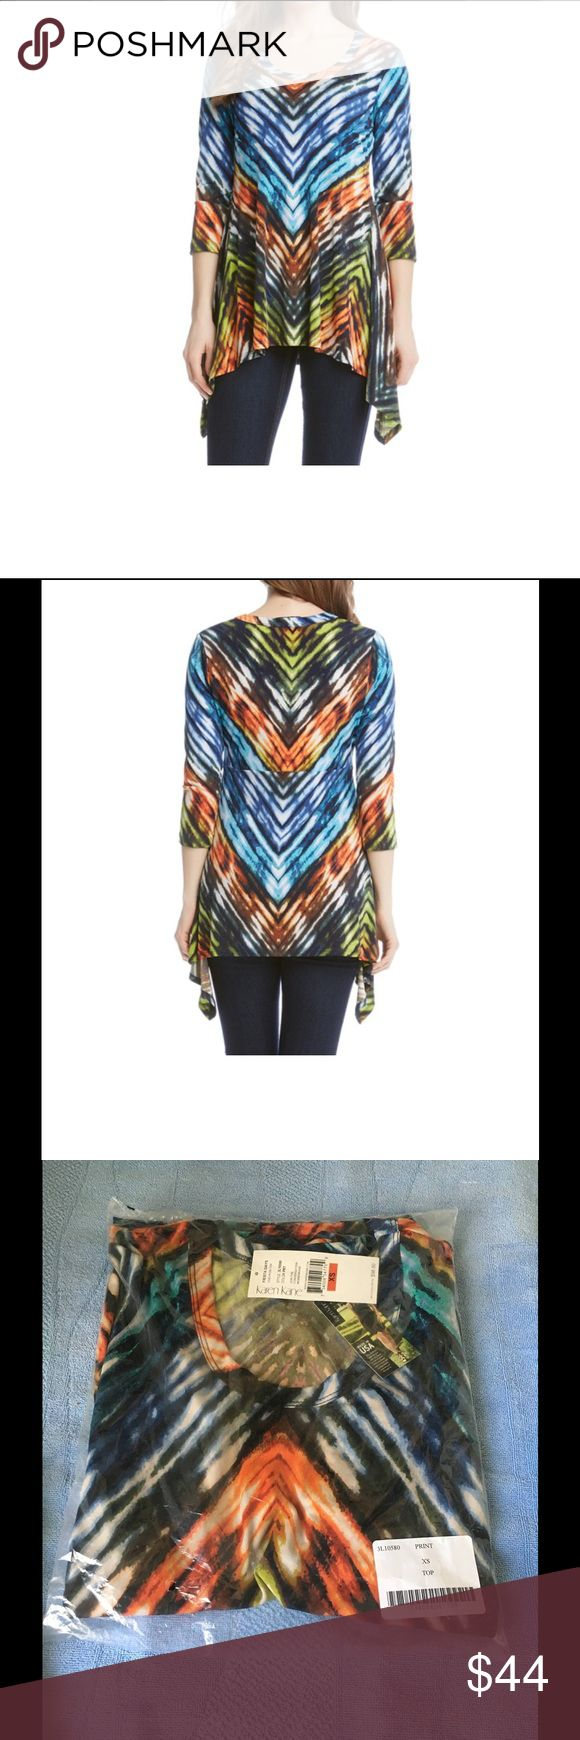 Karen Kane Fiesta Chevron Handkerchief Top Not only is this new with tag but it's in the original packaging, never opened. Beautiful multi color handkerchief hem top by none other than Karen Kane. Karen Kane Tops